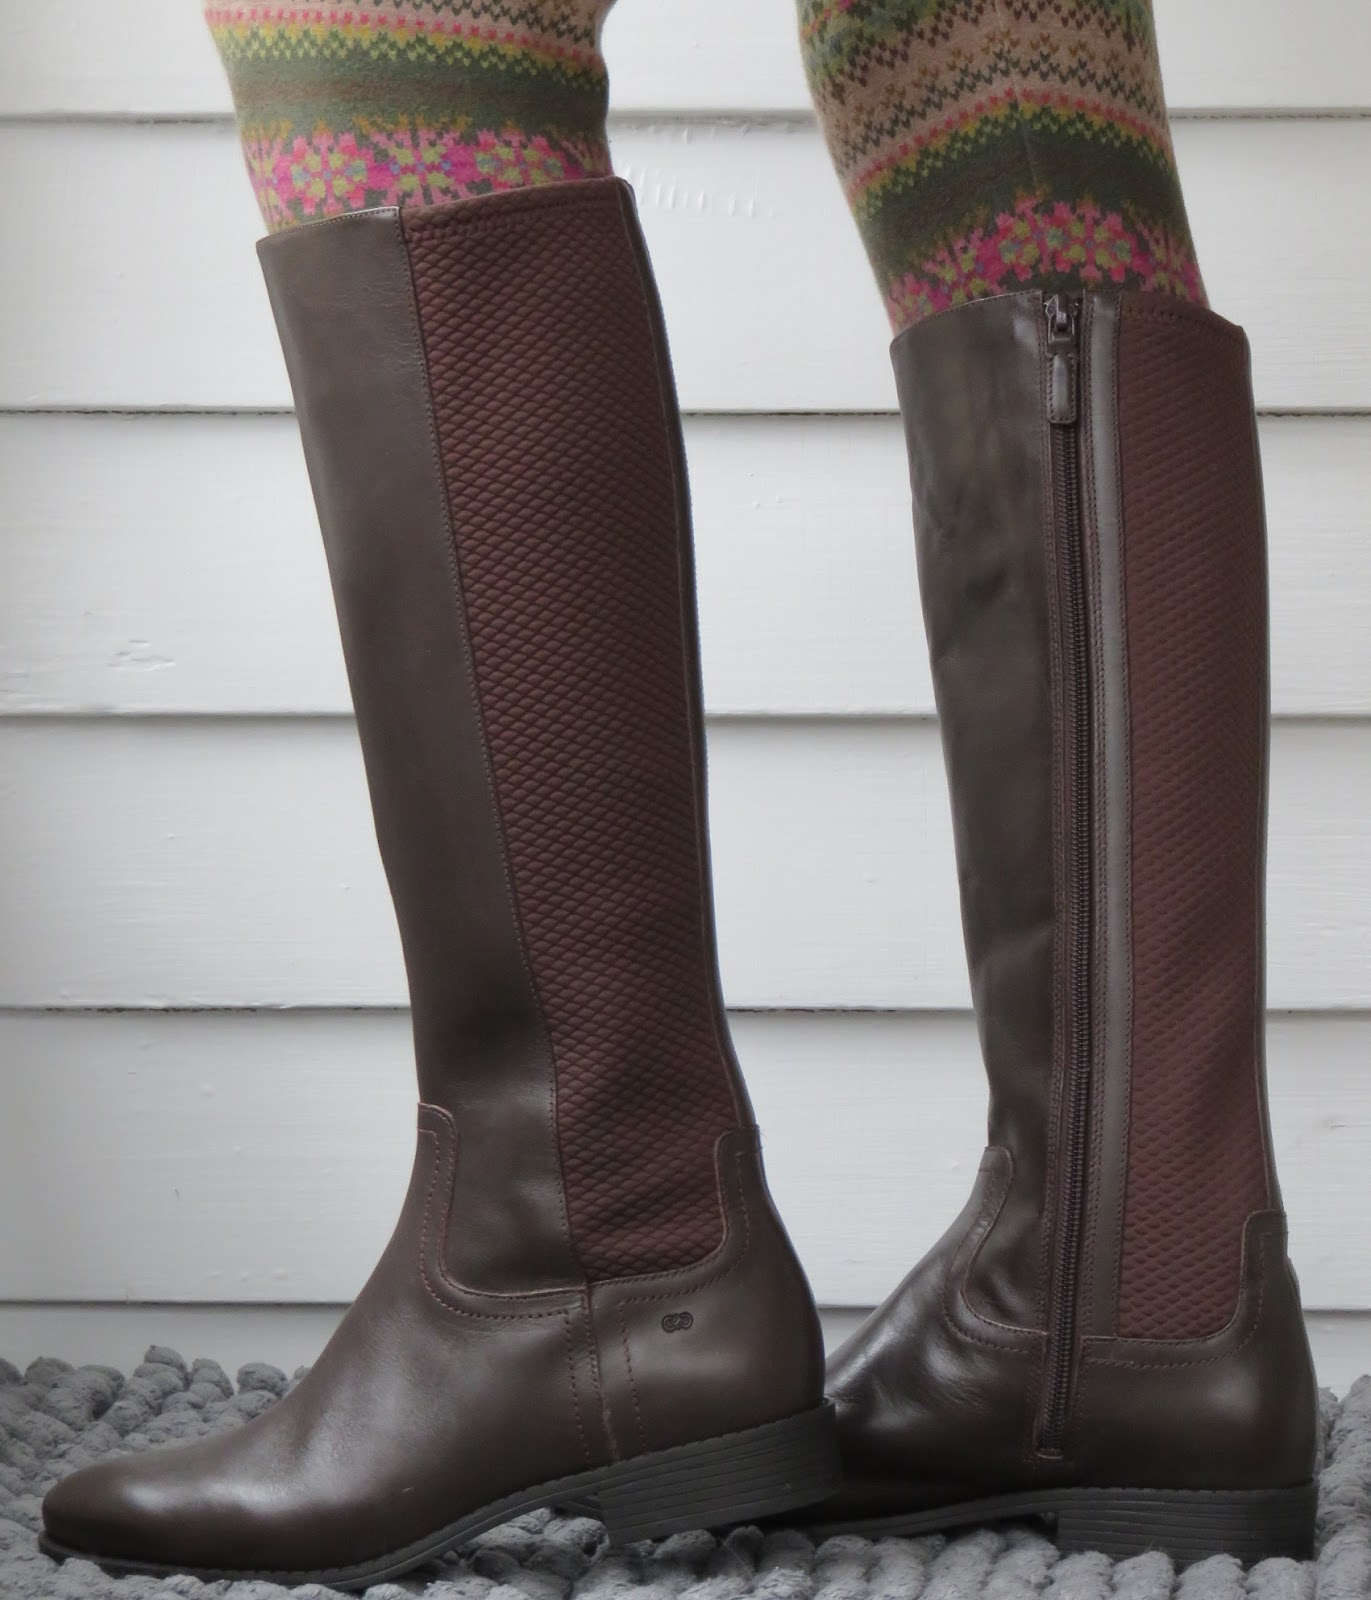 ebb4f1abe6b Howdy Slim! Riding Boots for Thin Calves: Cole Haan Tilley II